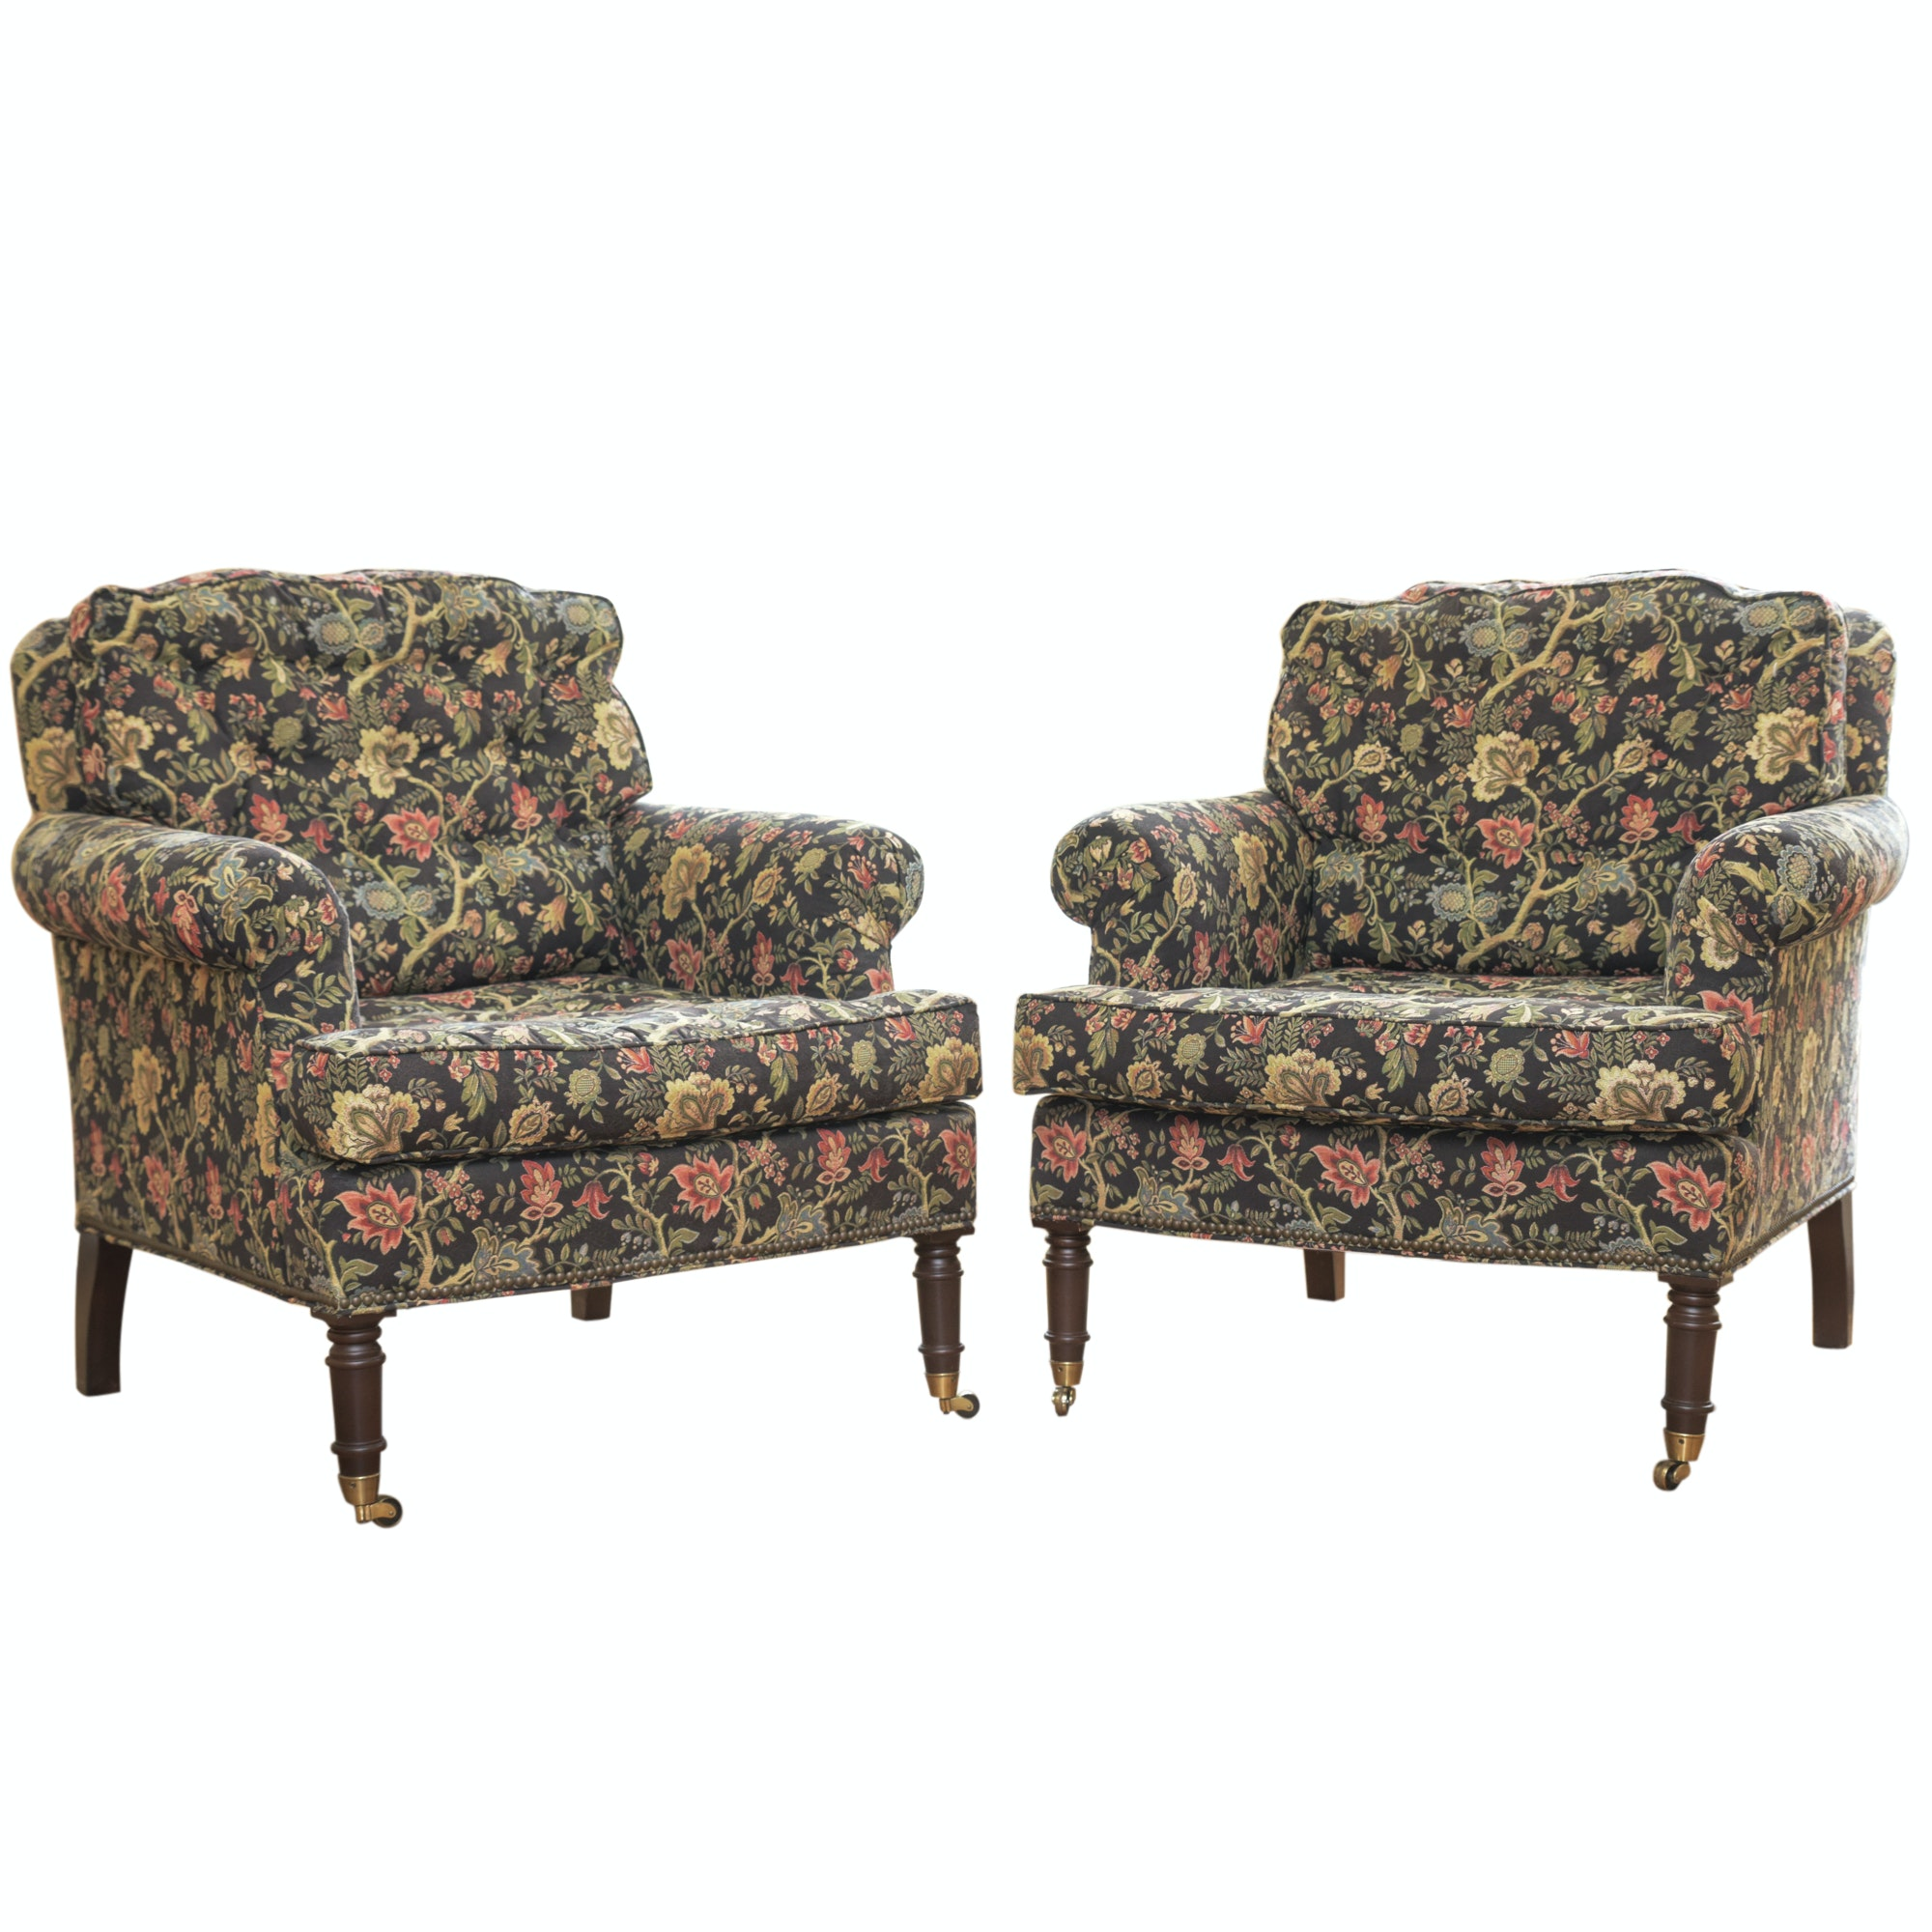 Federal Style Floral Upholstered Armchairs by Lillian August, 21st Century